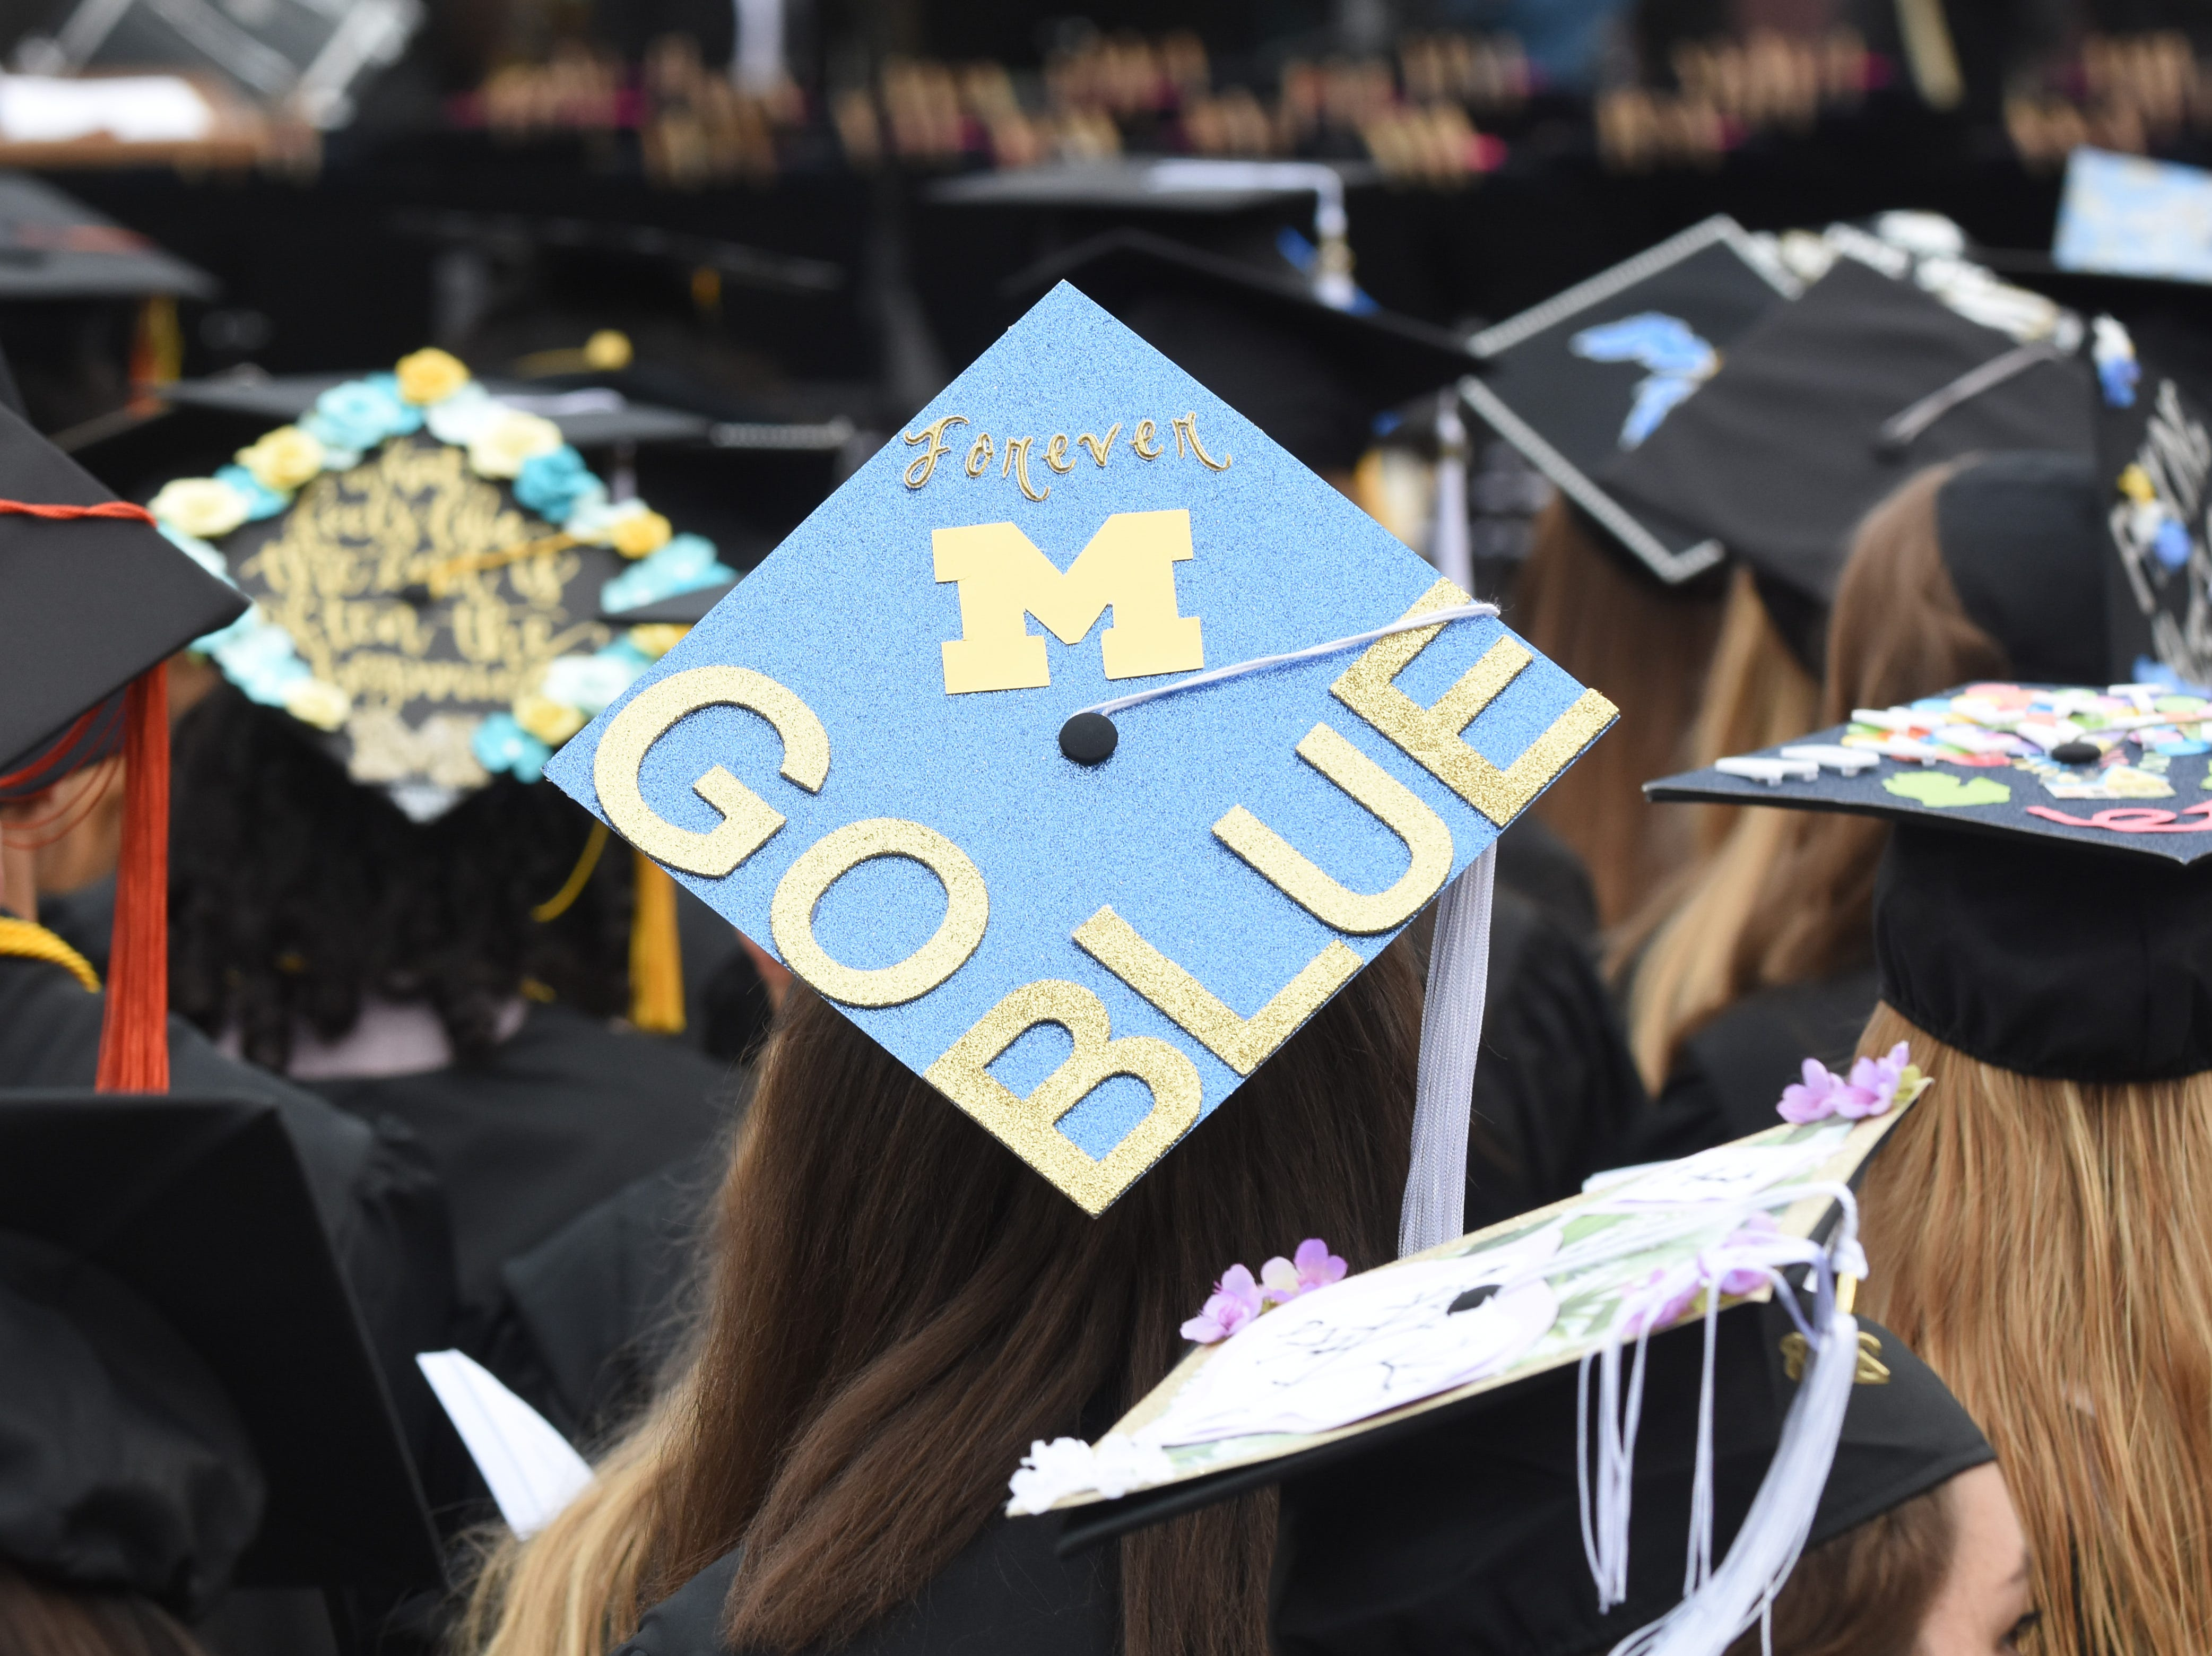 University of Michigan students decorated their mortarboard with plenty of 'go blue'.